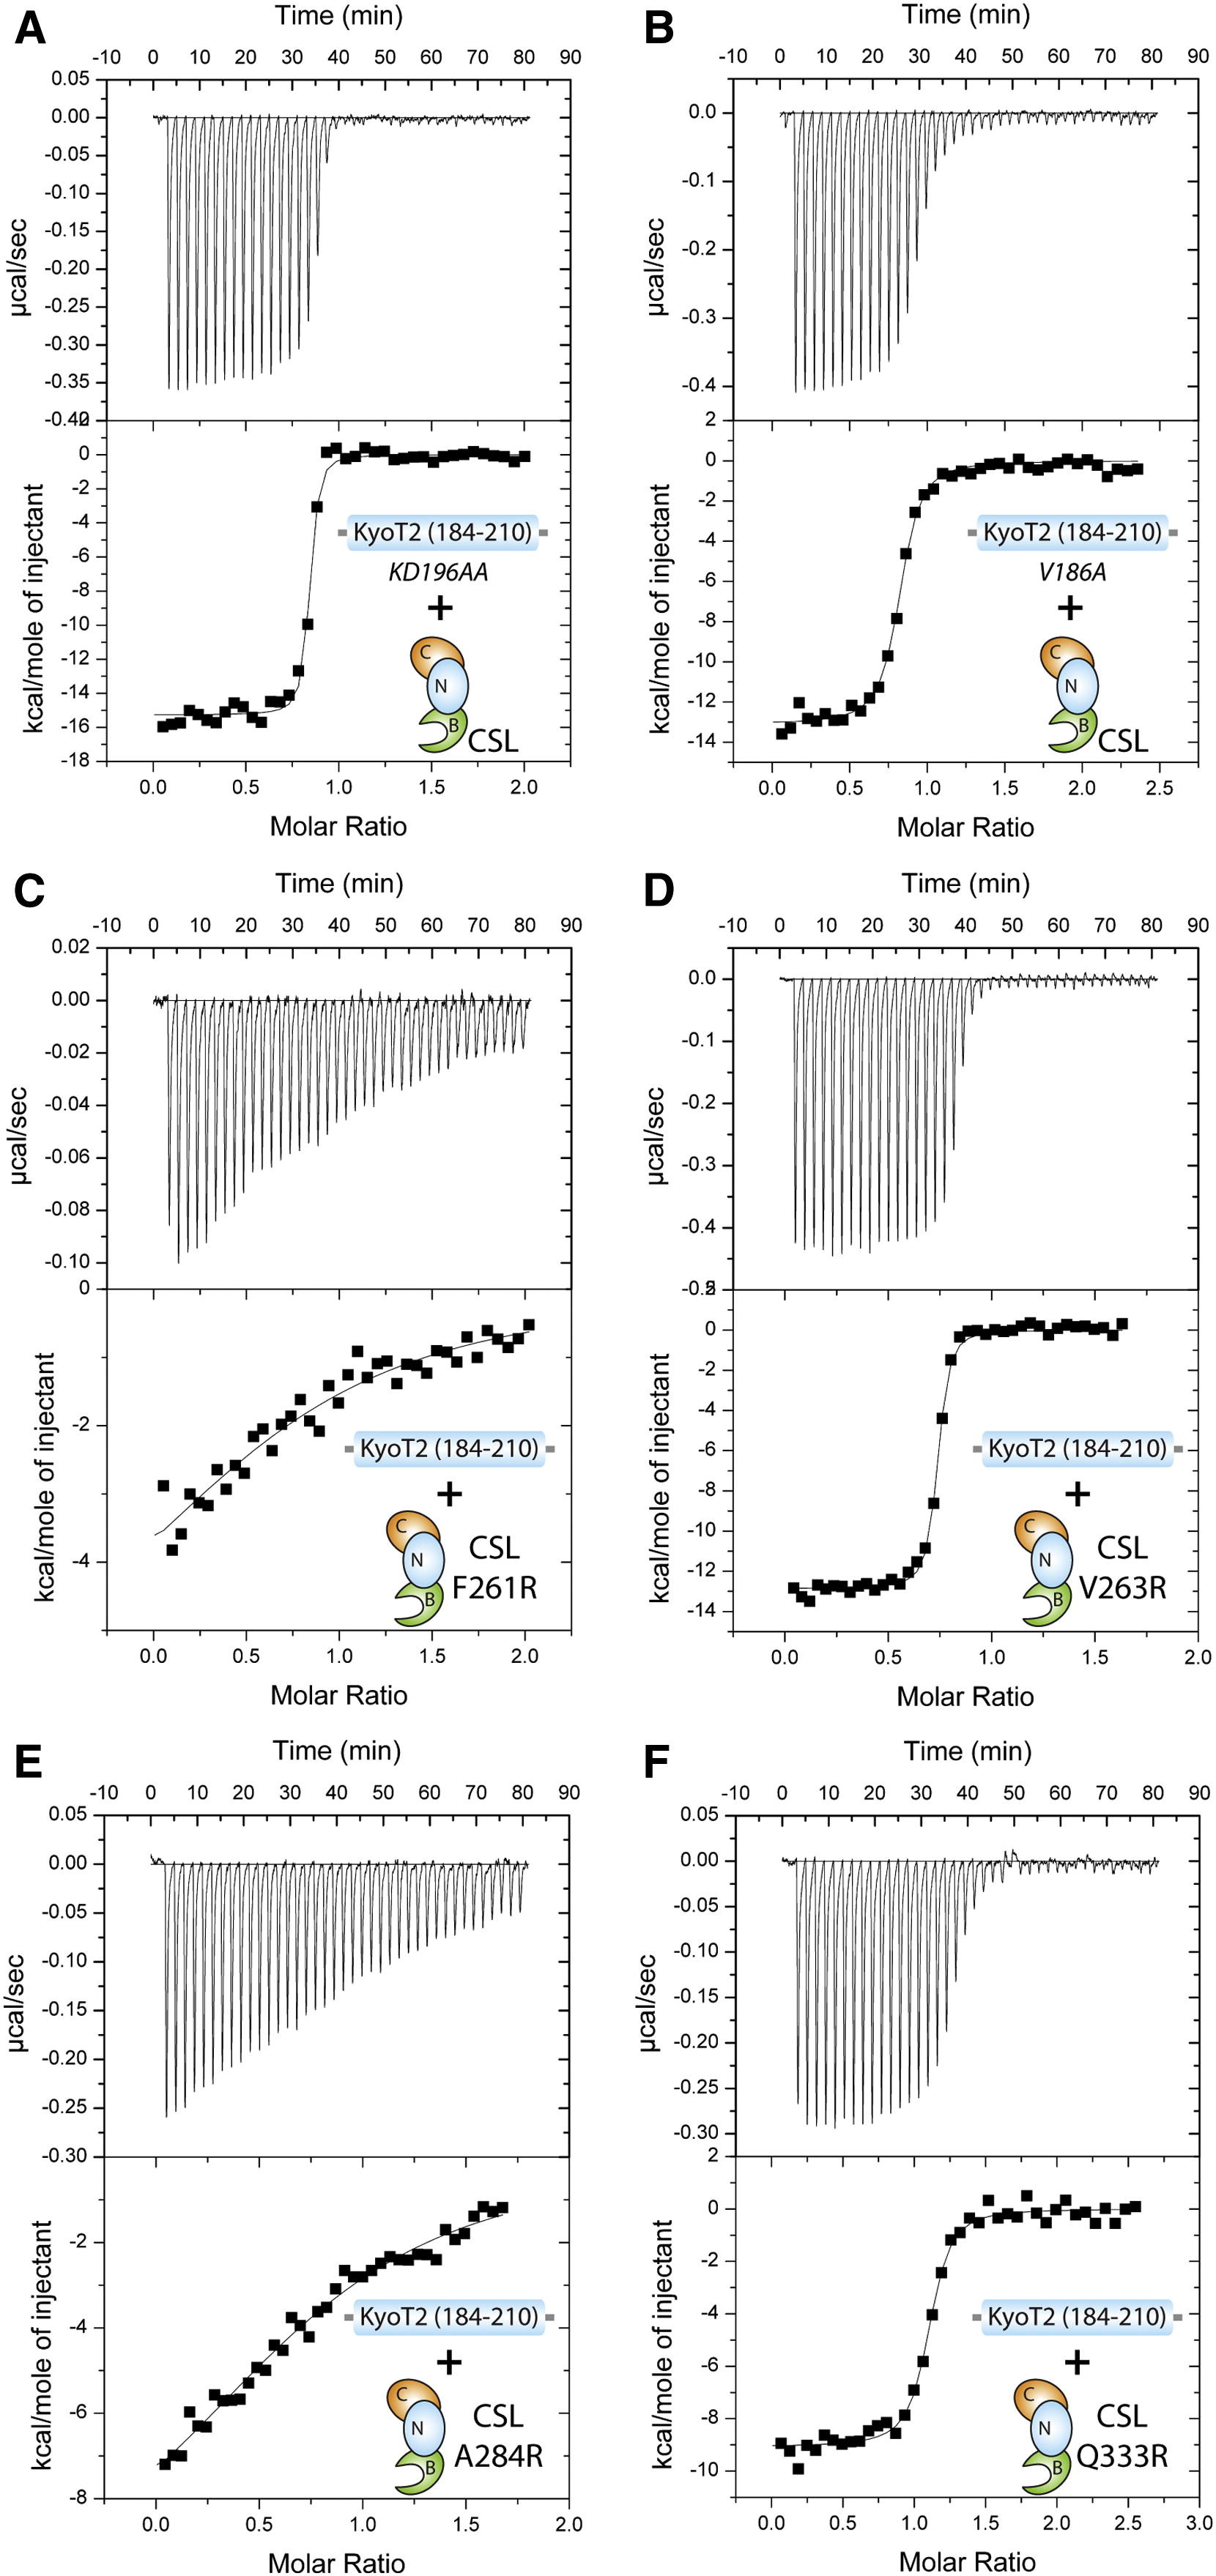 Structure And Function Of The Csl Kyot2 Corepressor Complex A Negative Regulator Of Notch